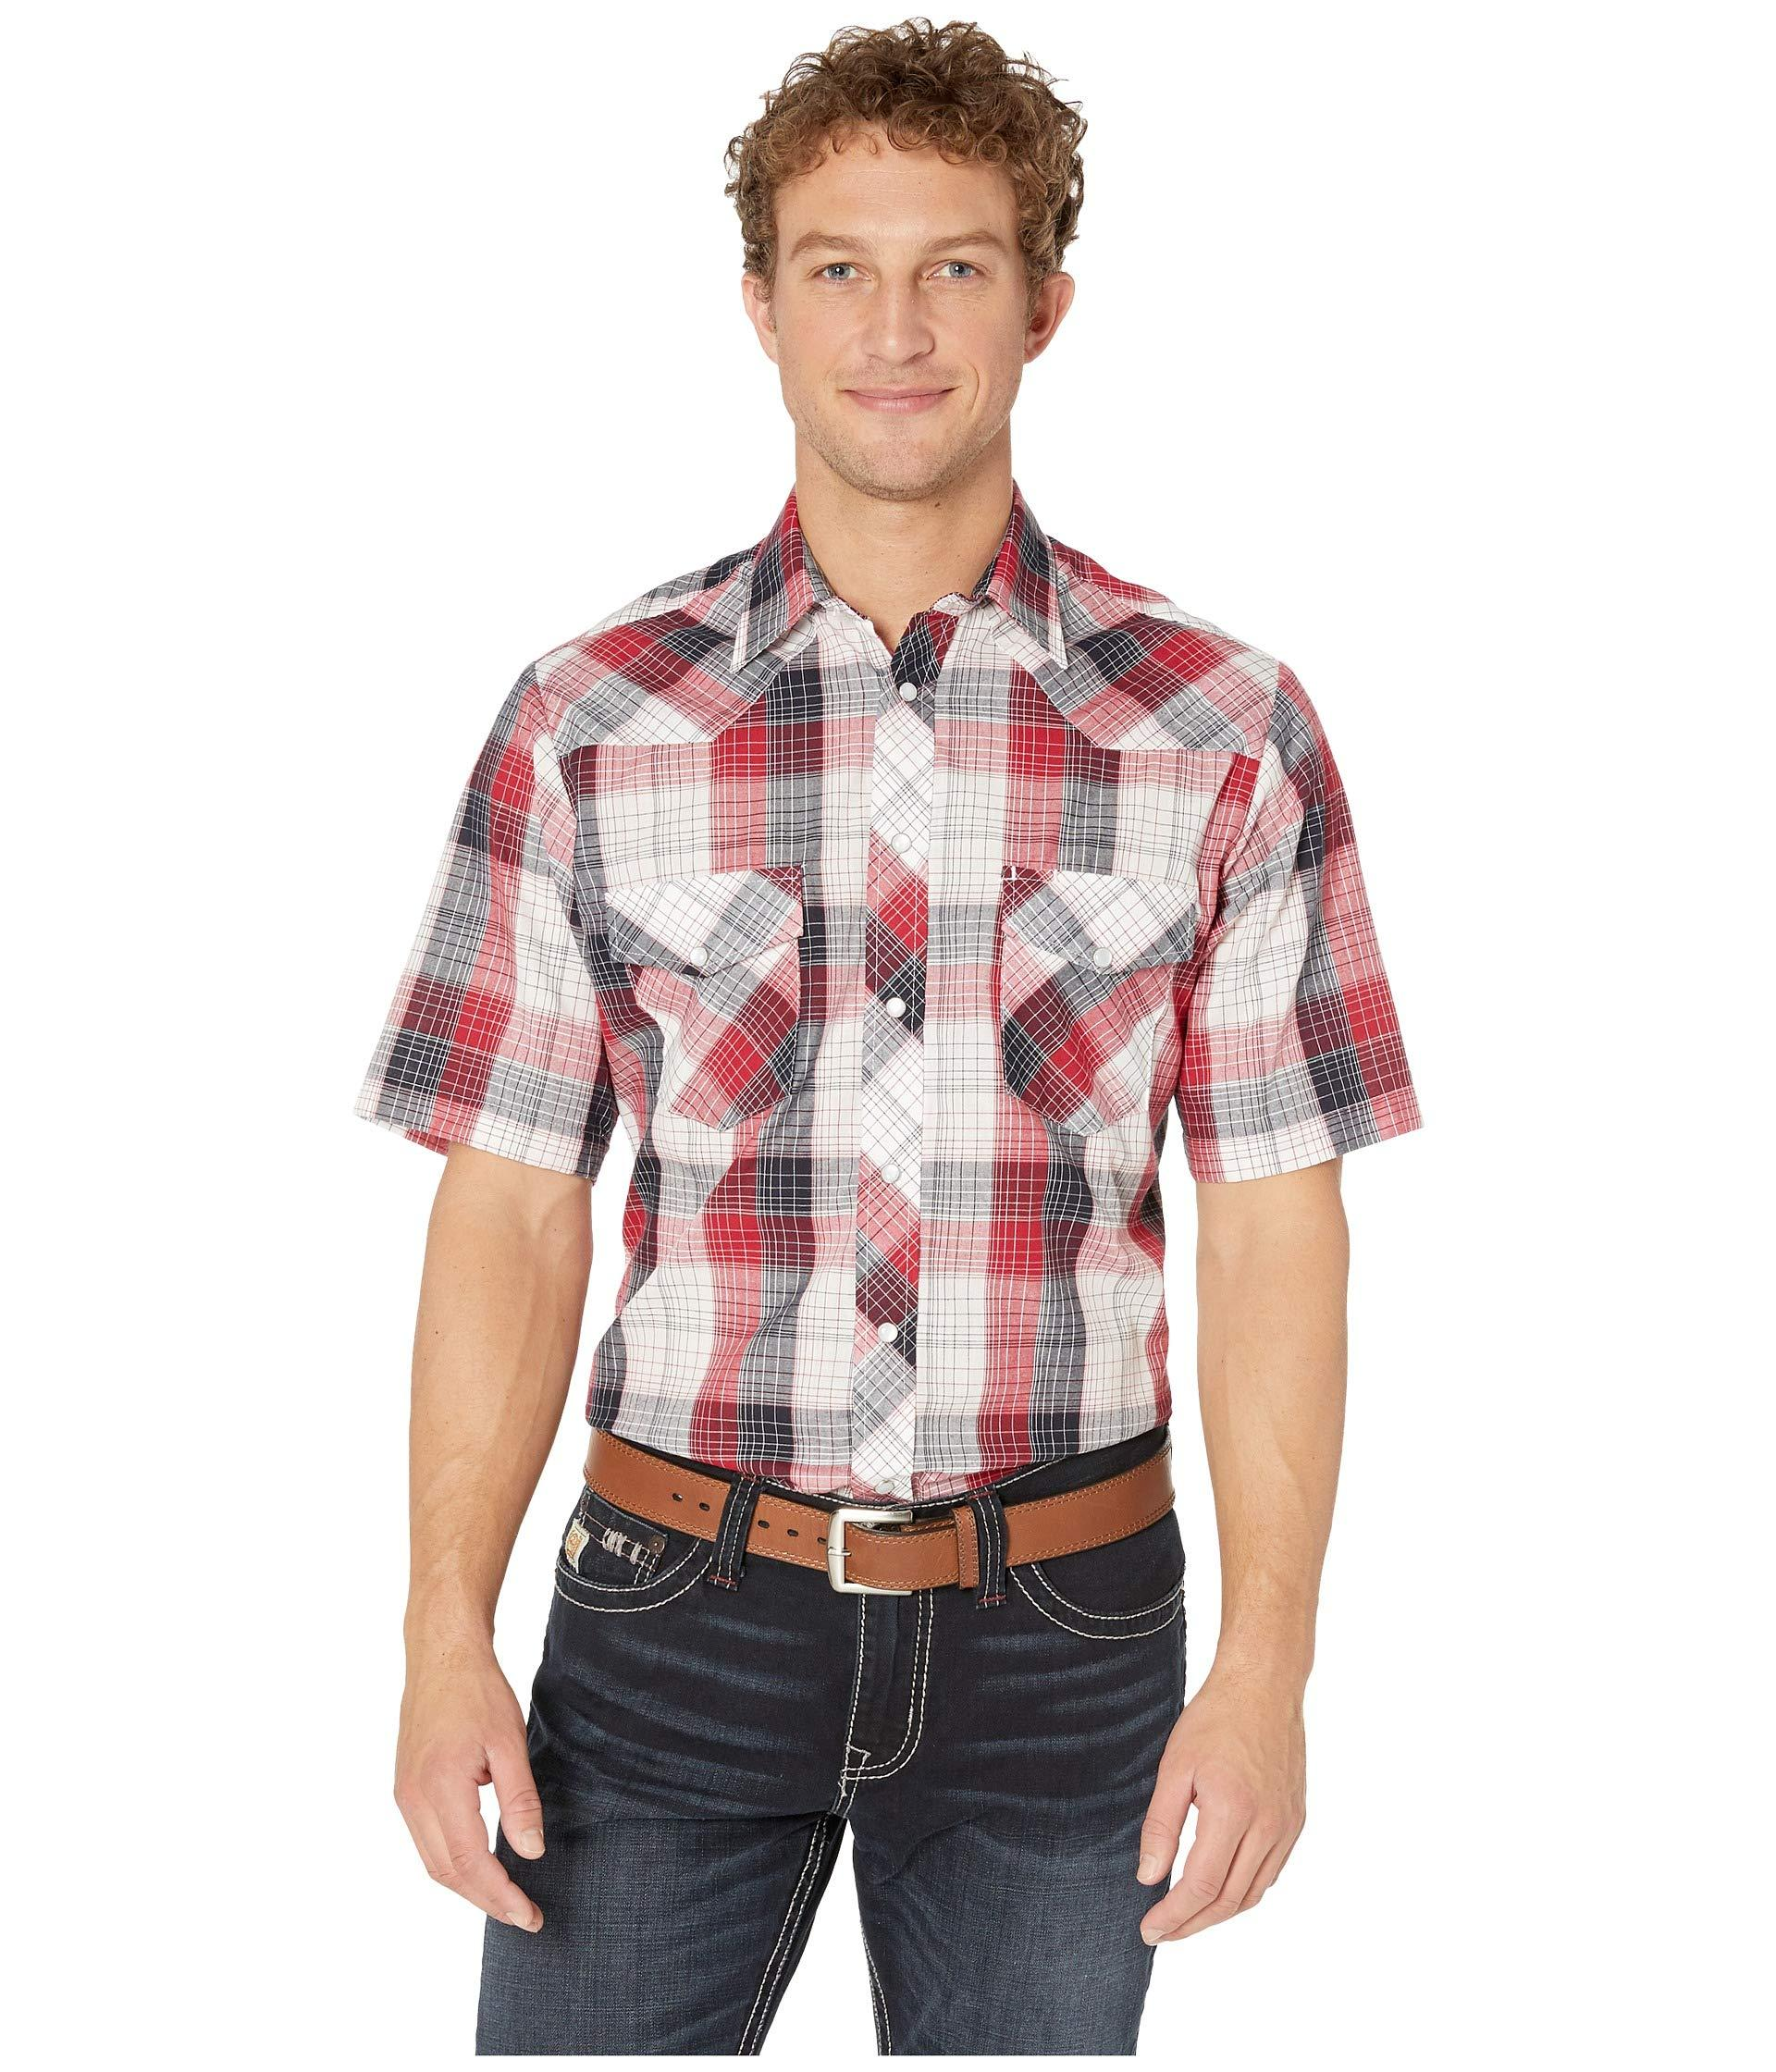 f6ca7218 Lyst - Roper 2793 Red, White And Blue Plaid (red) Men's Clothing in ...